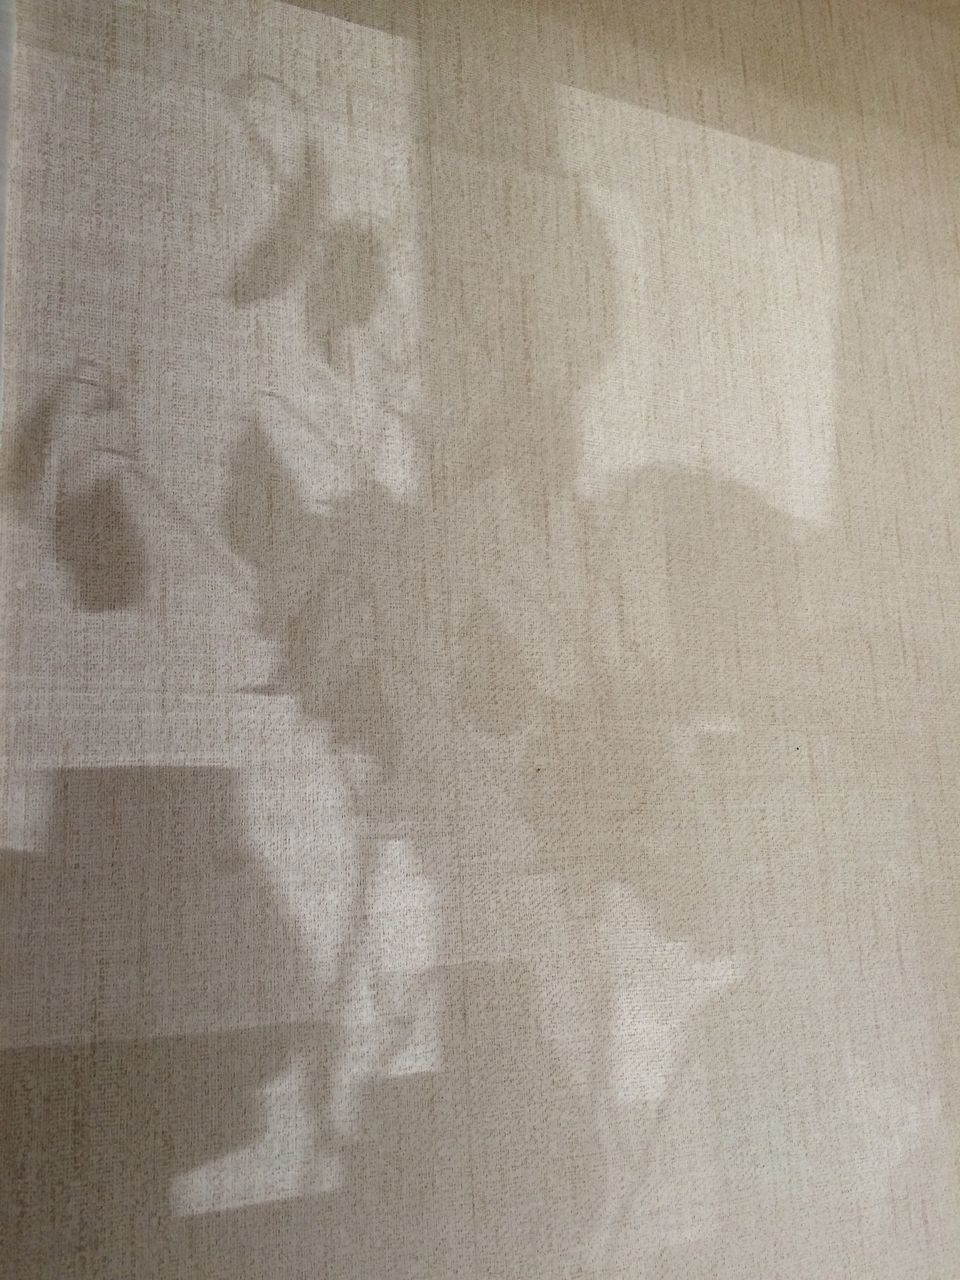 Shadow Of Plants On Curtain At Home